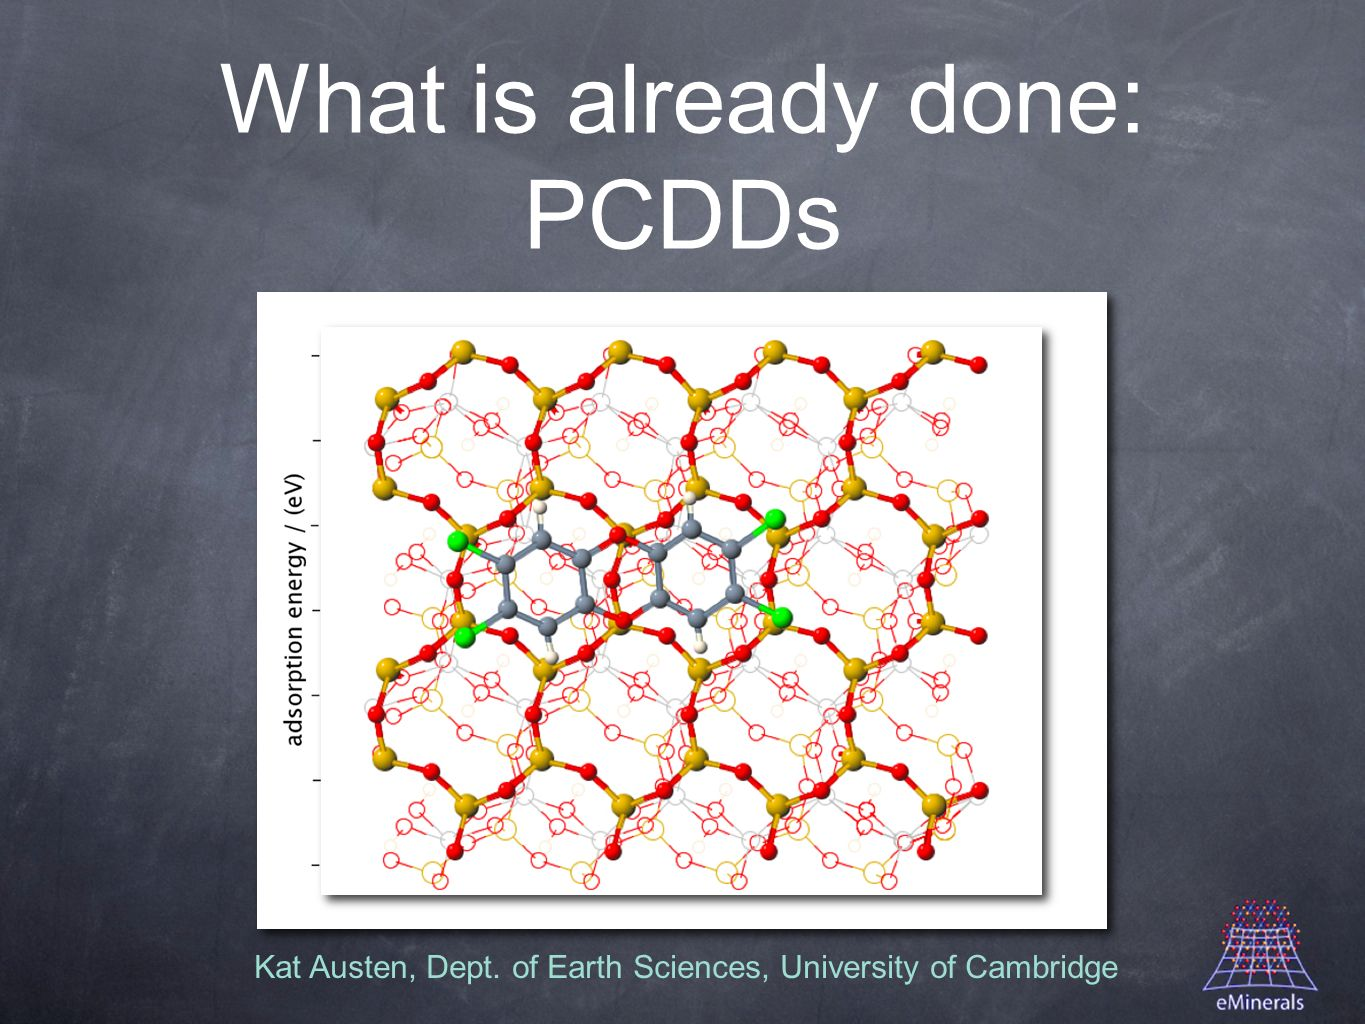 Kat Austen, Dept. of Earth Sciences, University of Cambridge What is already done: PCDDs